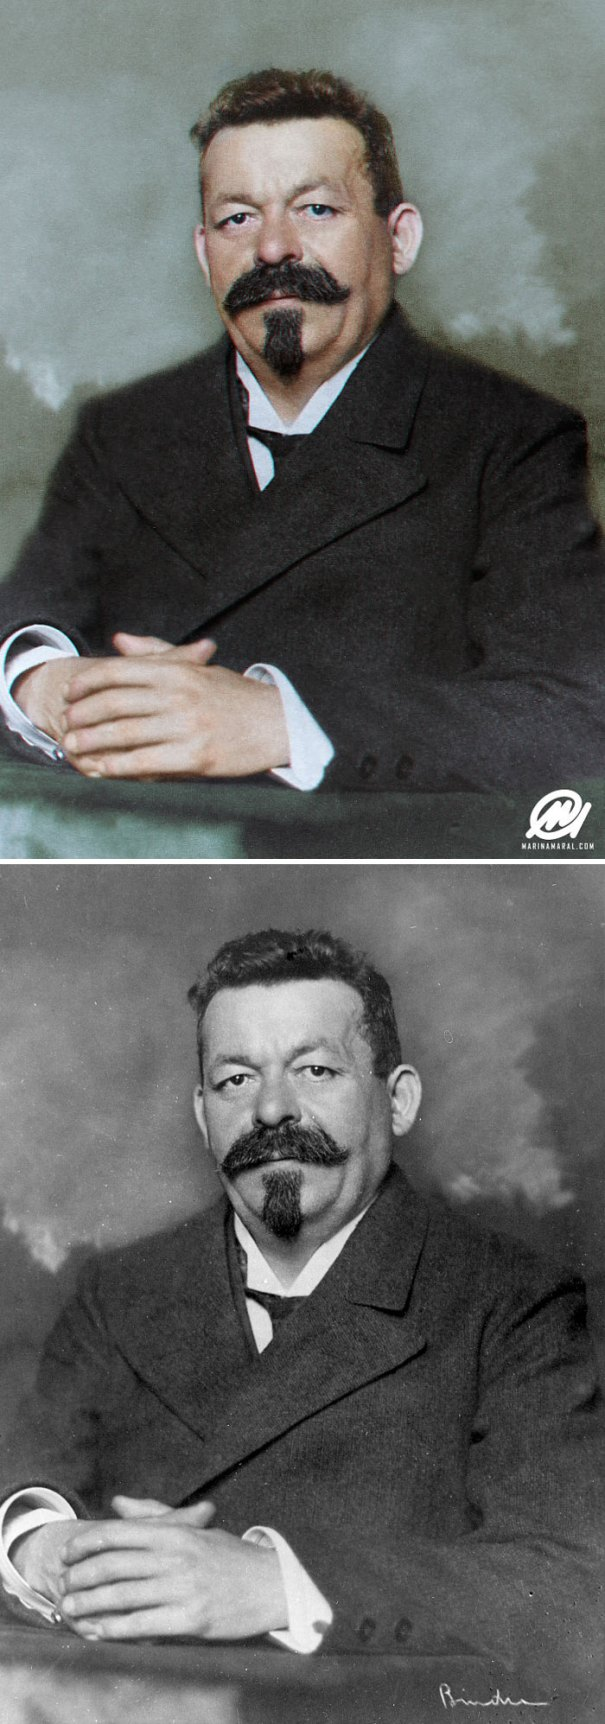 5b6d3b96b2356-colorized-historic-photos-marina-amaral-167-5b6ad7d6ba1df__700 This Artist Colorizes Old Black & White Photos, And They Will Change The Way People Imagine History Photography Random